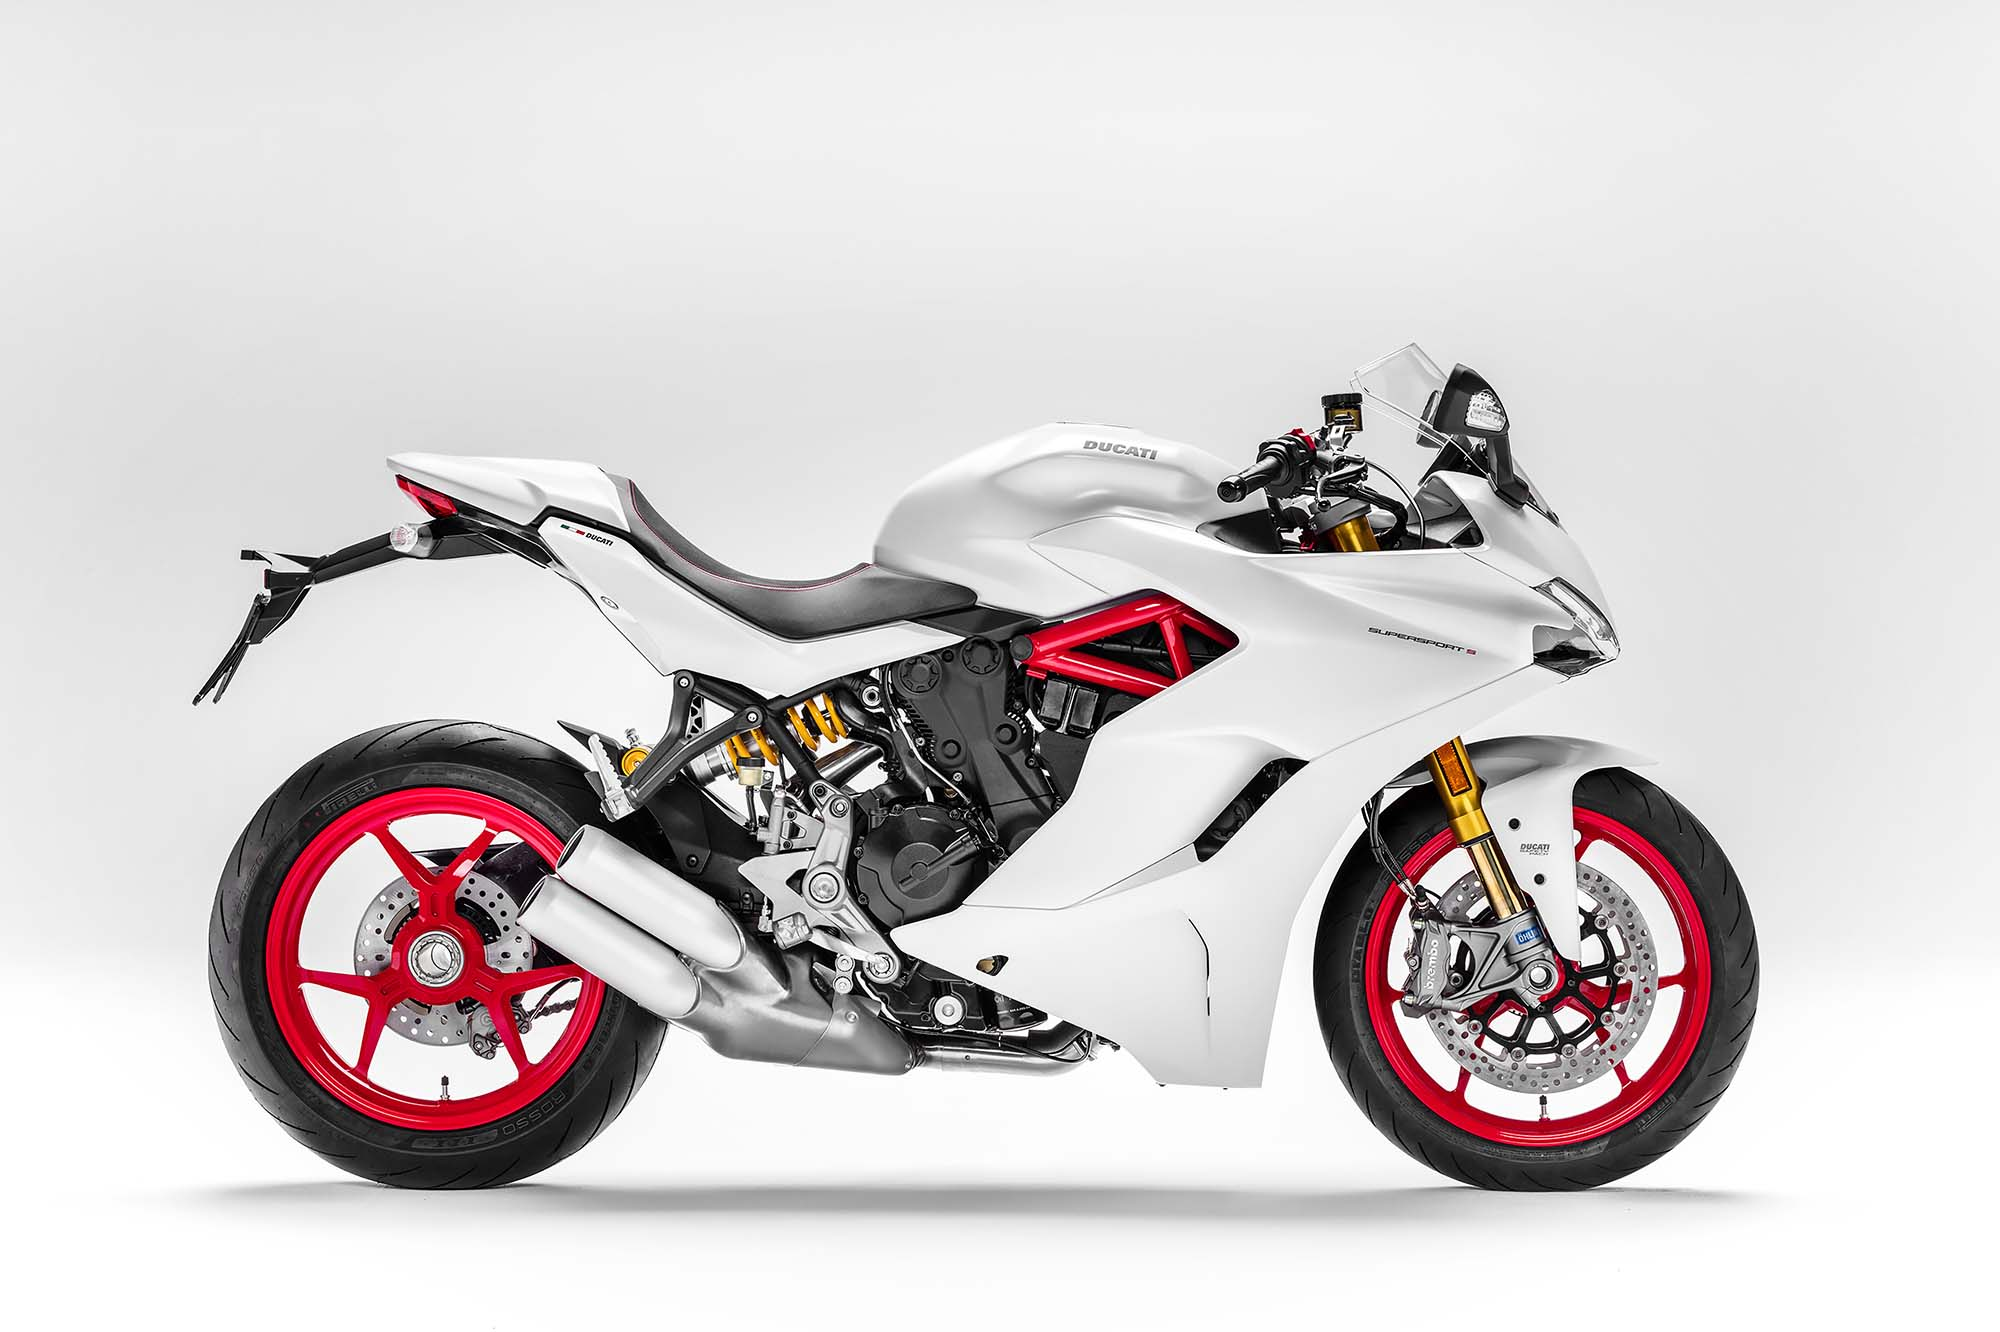 ducati supersport priced at $13,000 for the usa